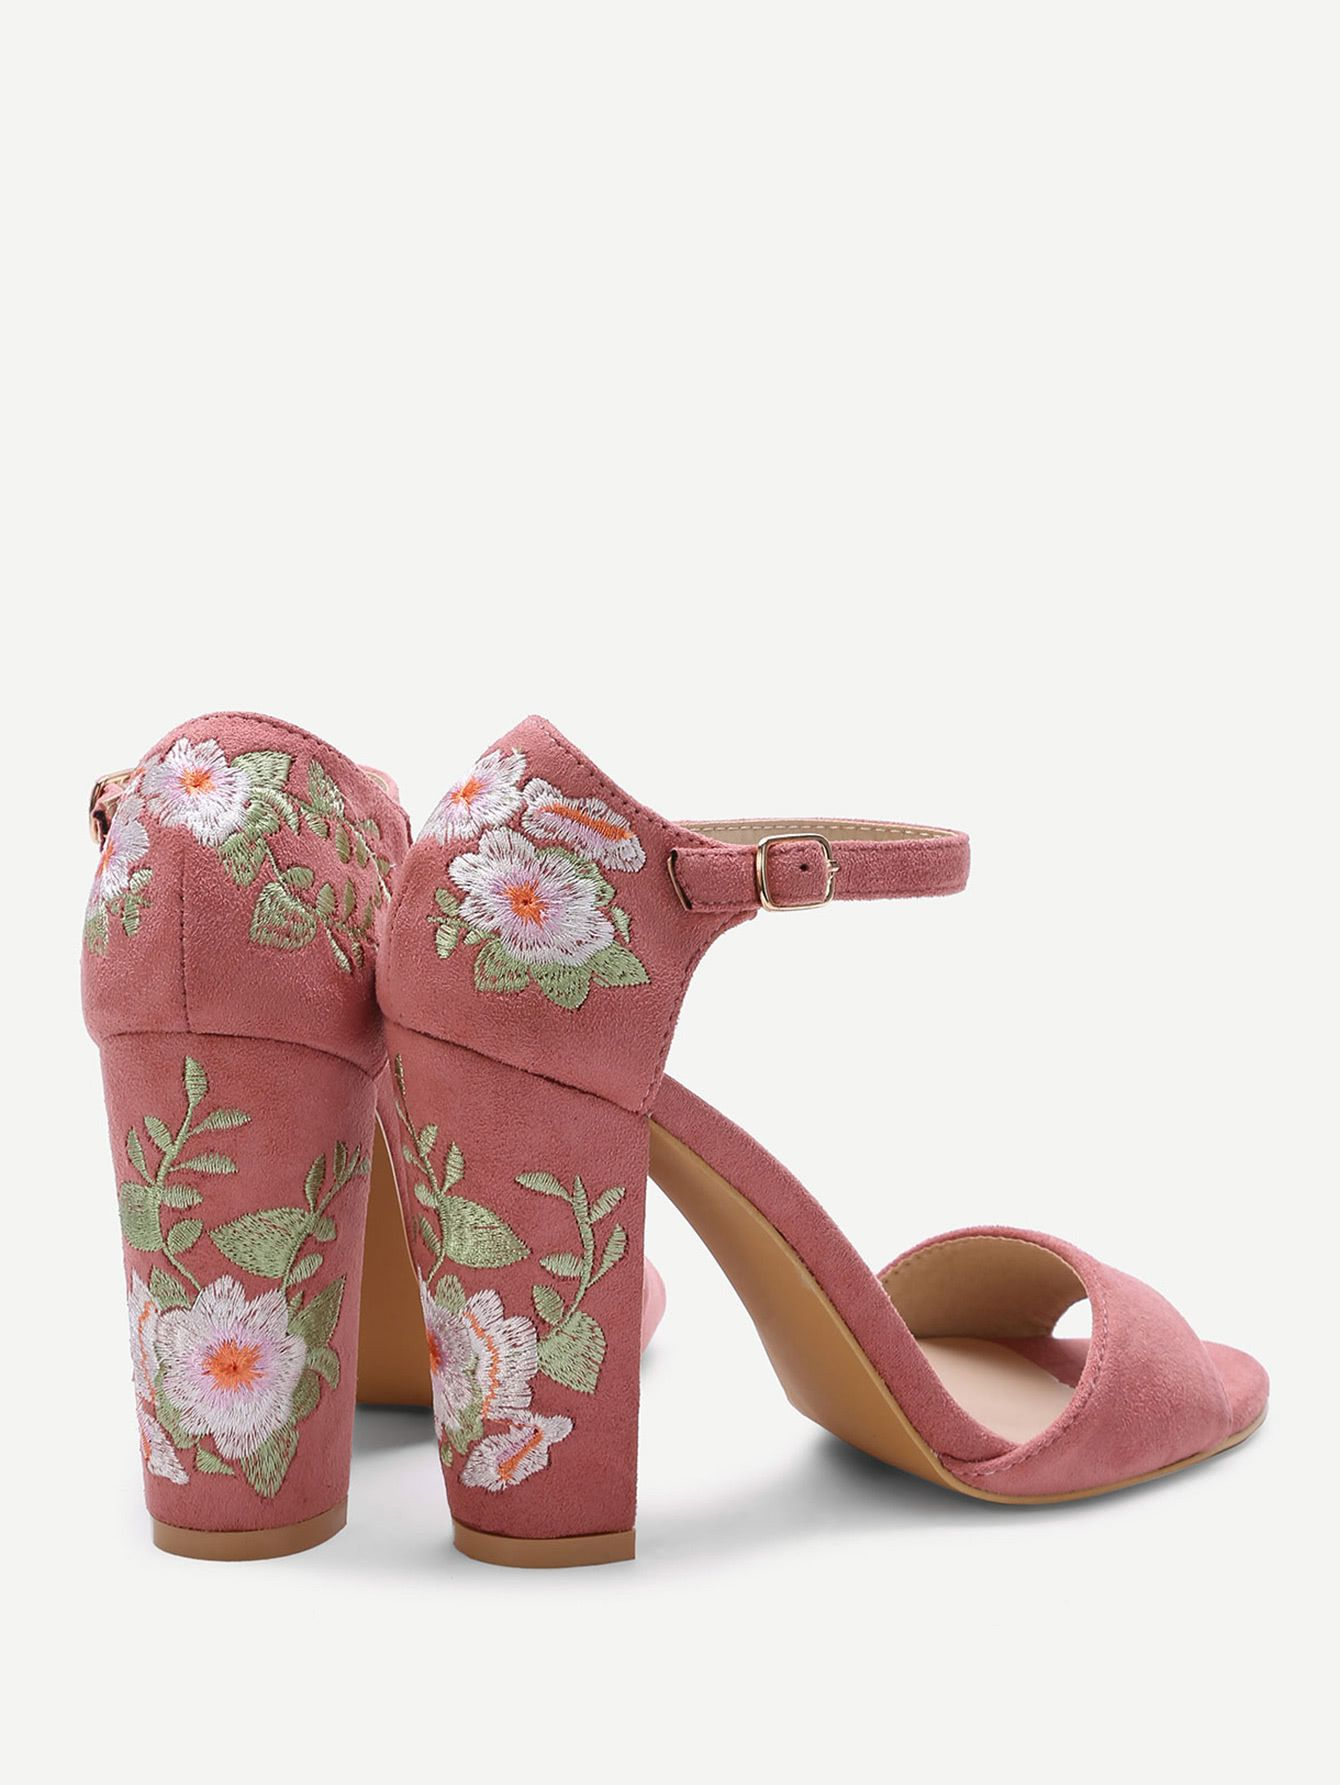 5a77232fb6dd Shop Pink Flower Embroidery Chunky Heel Sandals online. SheIn offers Pink  Flower Embroidery Chunky Heel Sandals   more to fit your fashionable needs.